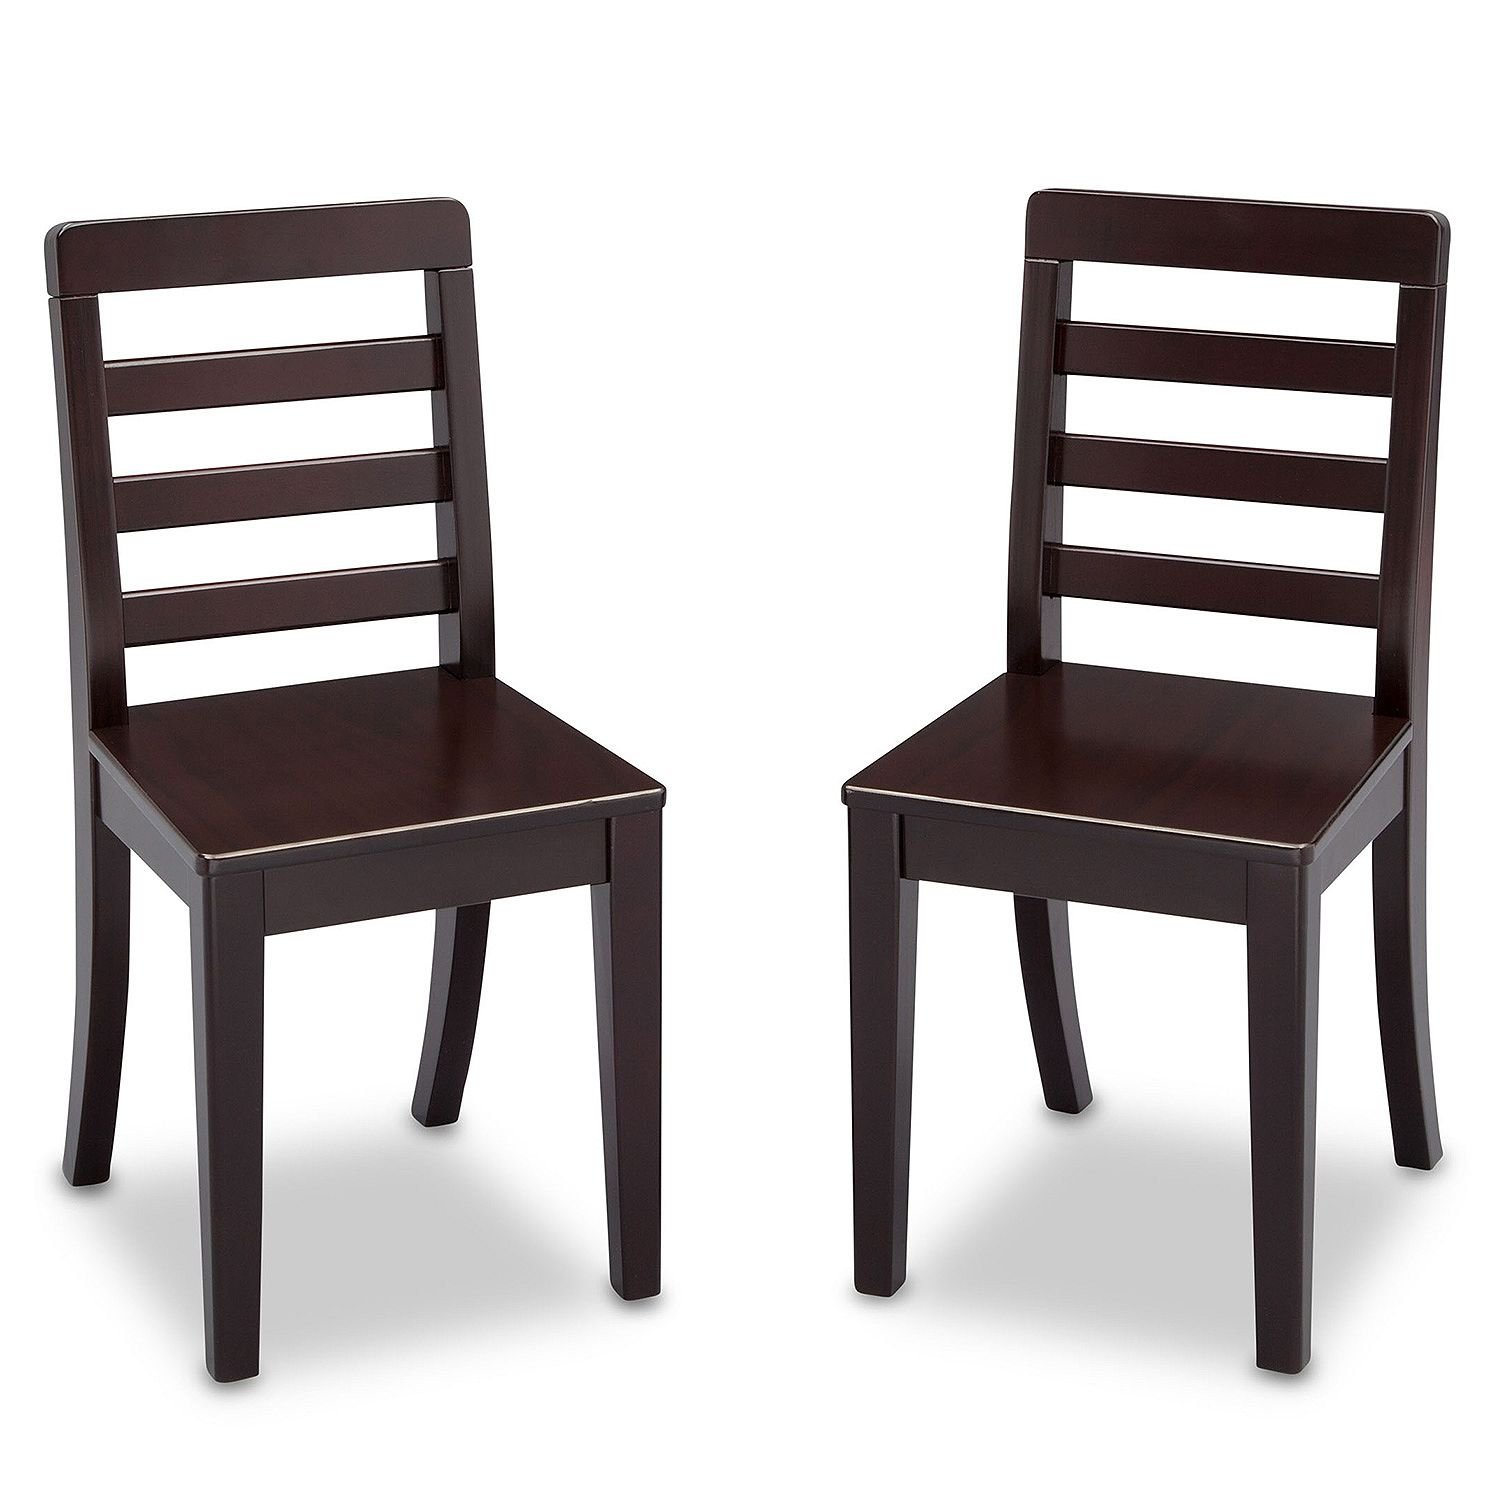 Children's Modern Simplistic Table and Chairs 3-Piece Set (Dark Chocolate Brown)